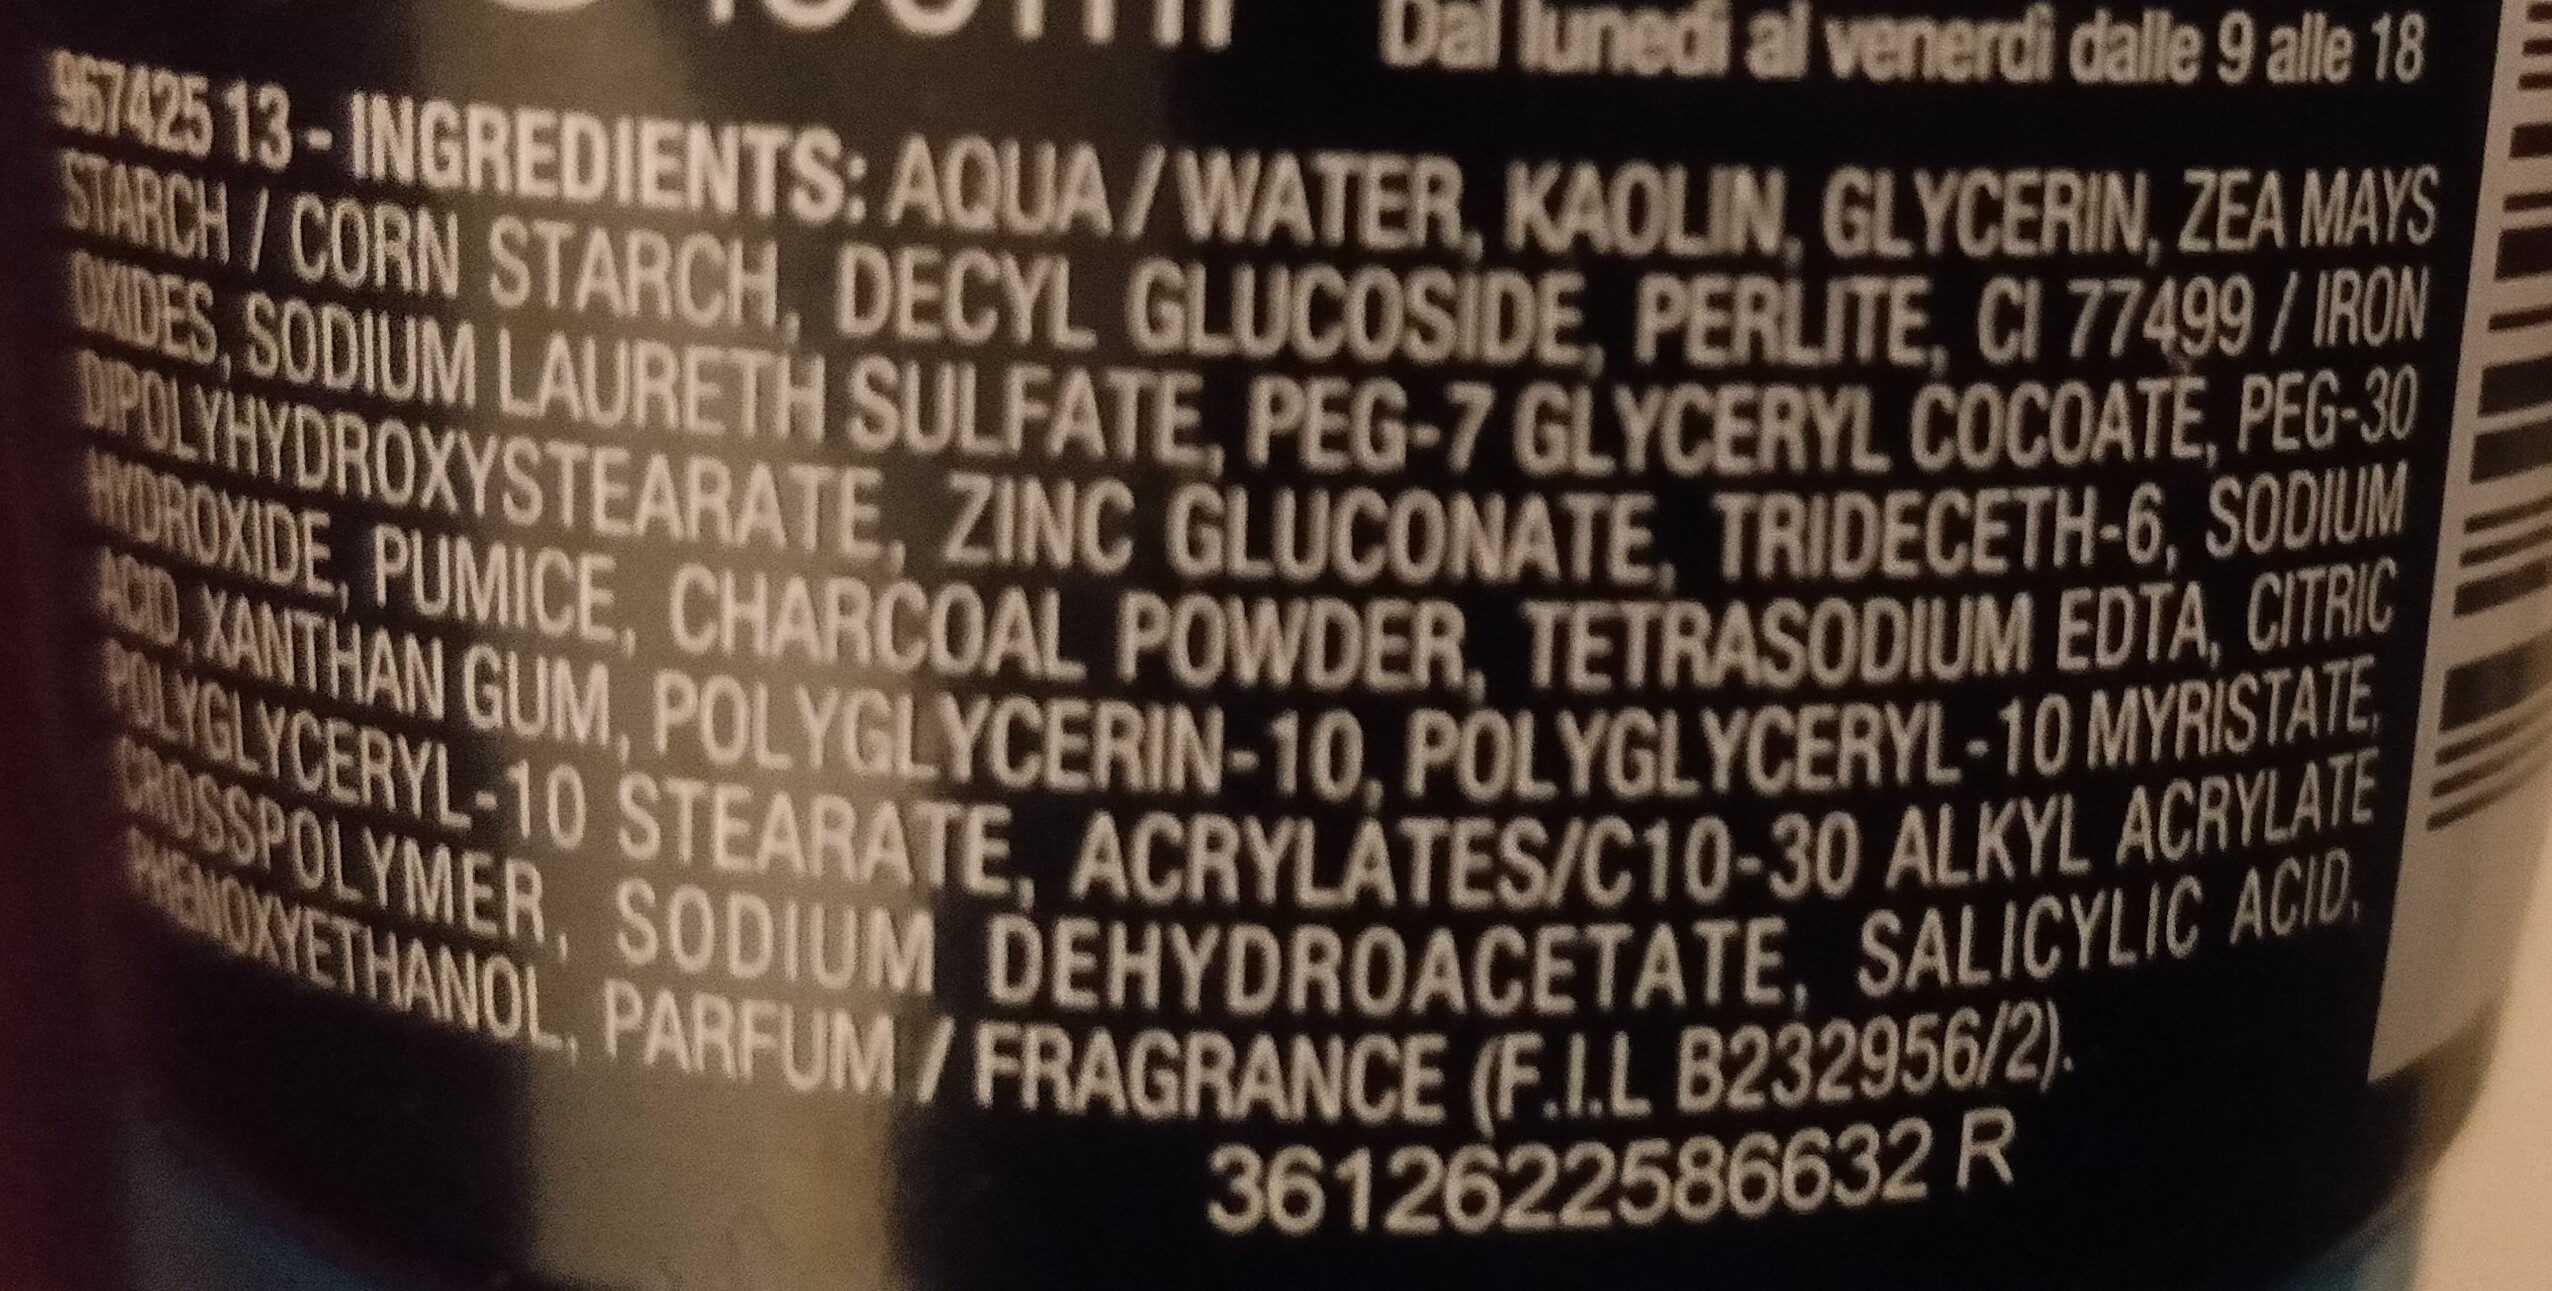 Pure Active 3 in 1 carbone - Ingredients - it